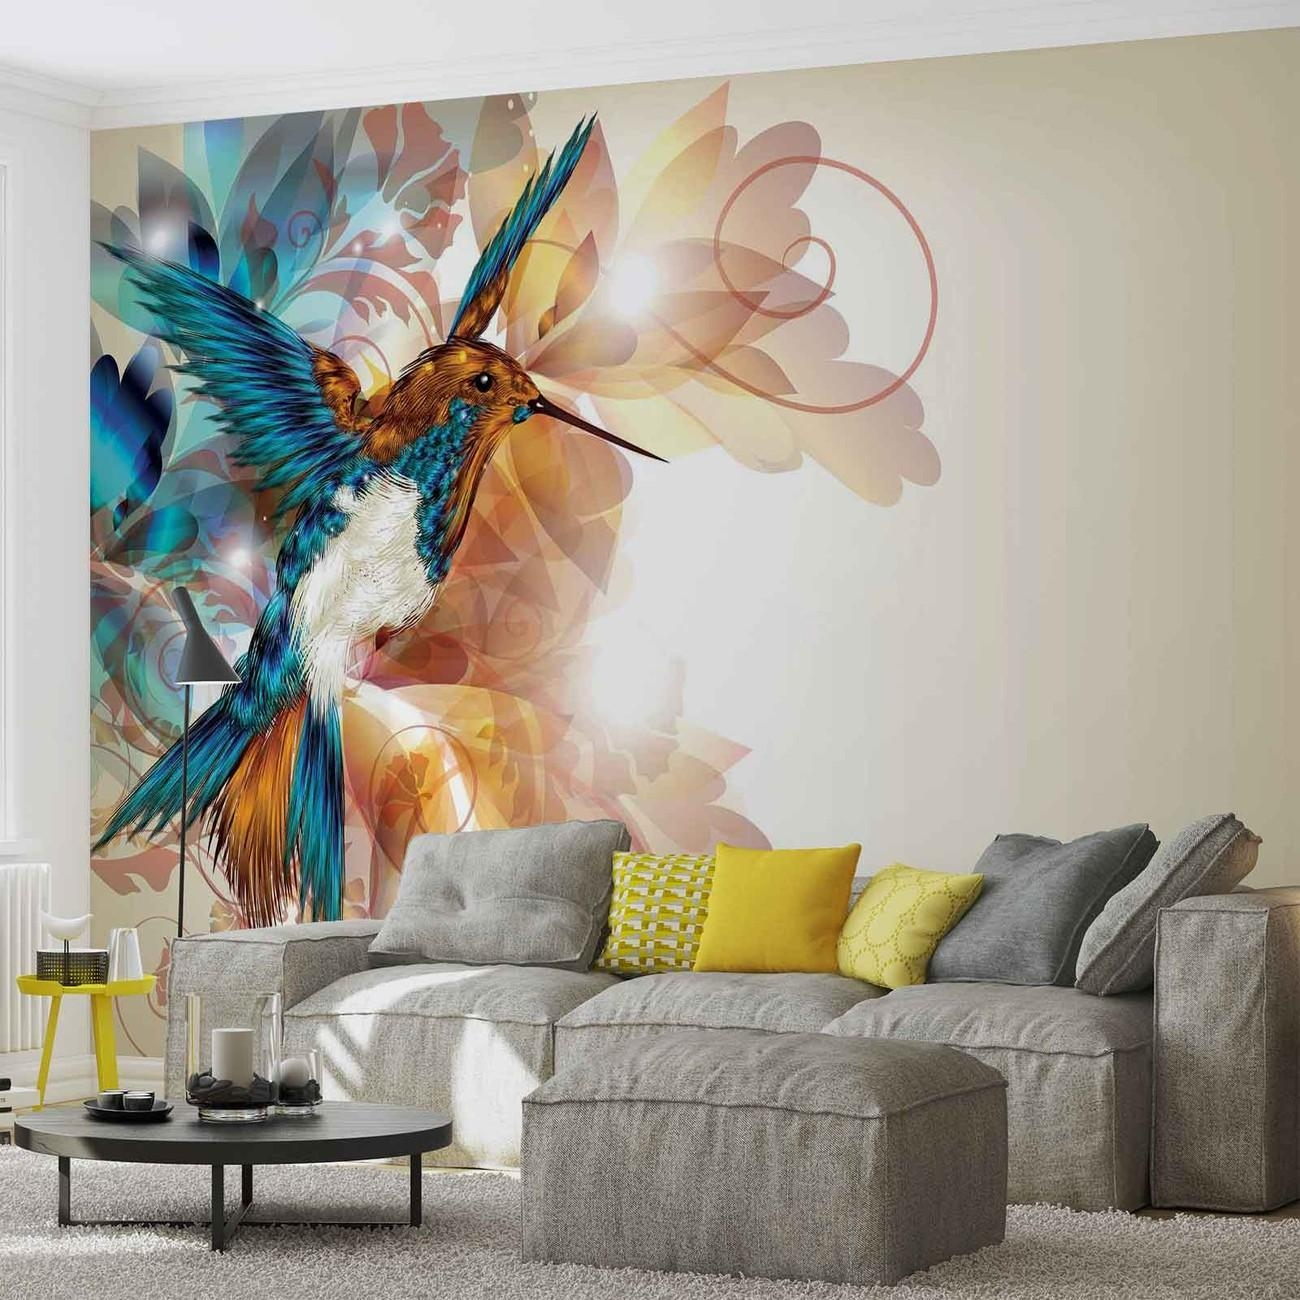 Birds Hummingbirds Flowers Abstract Wall Paper Mural | Buy At With Abstract Art Wall Murals (View 14 of 20)